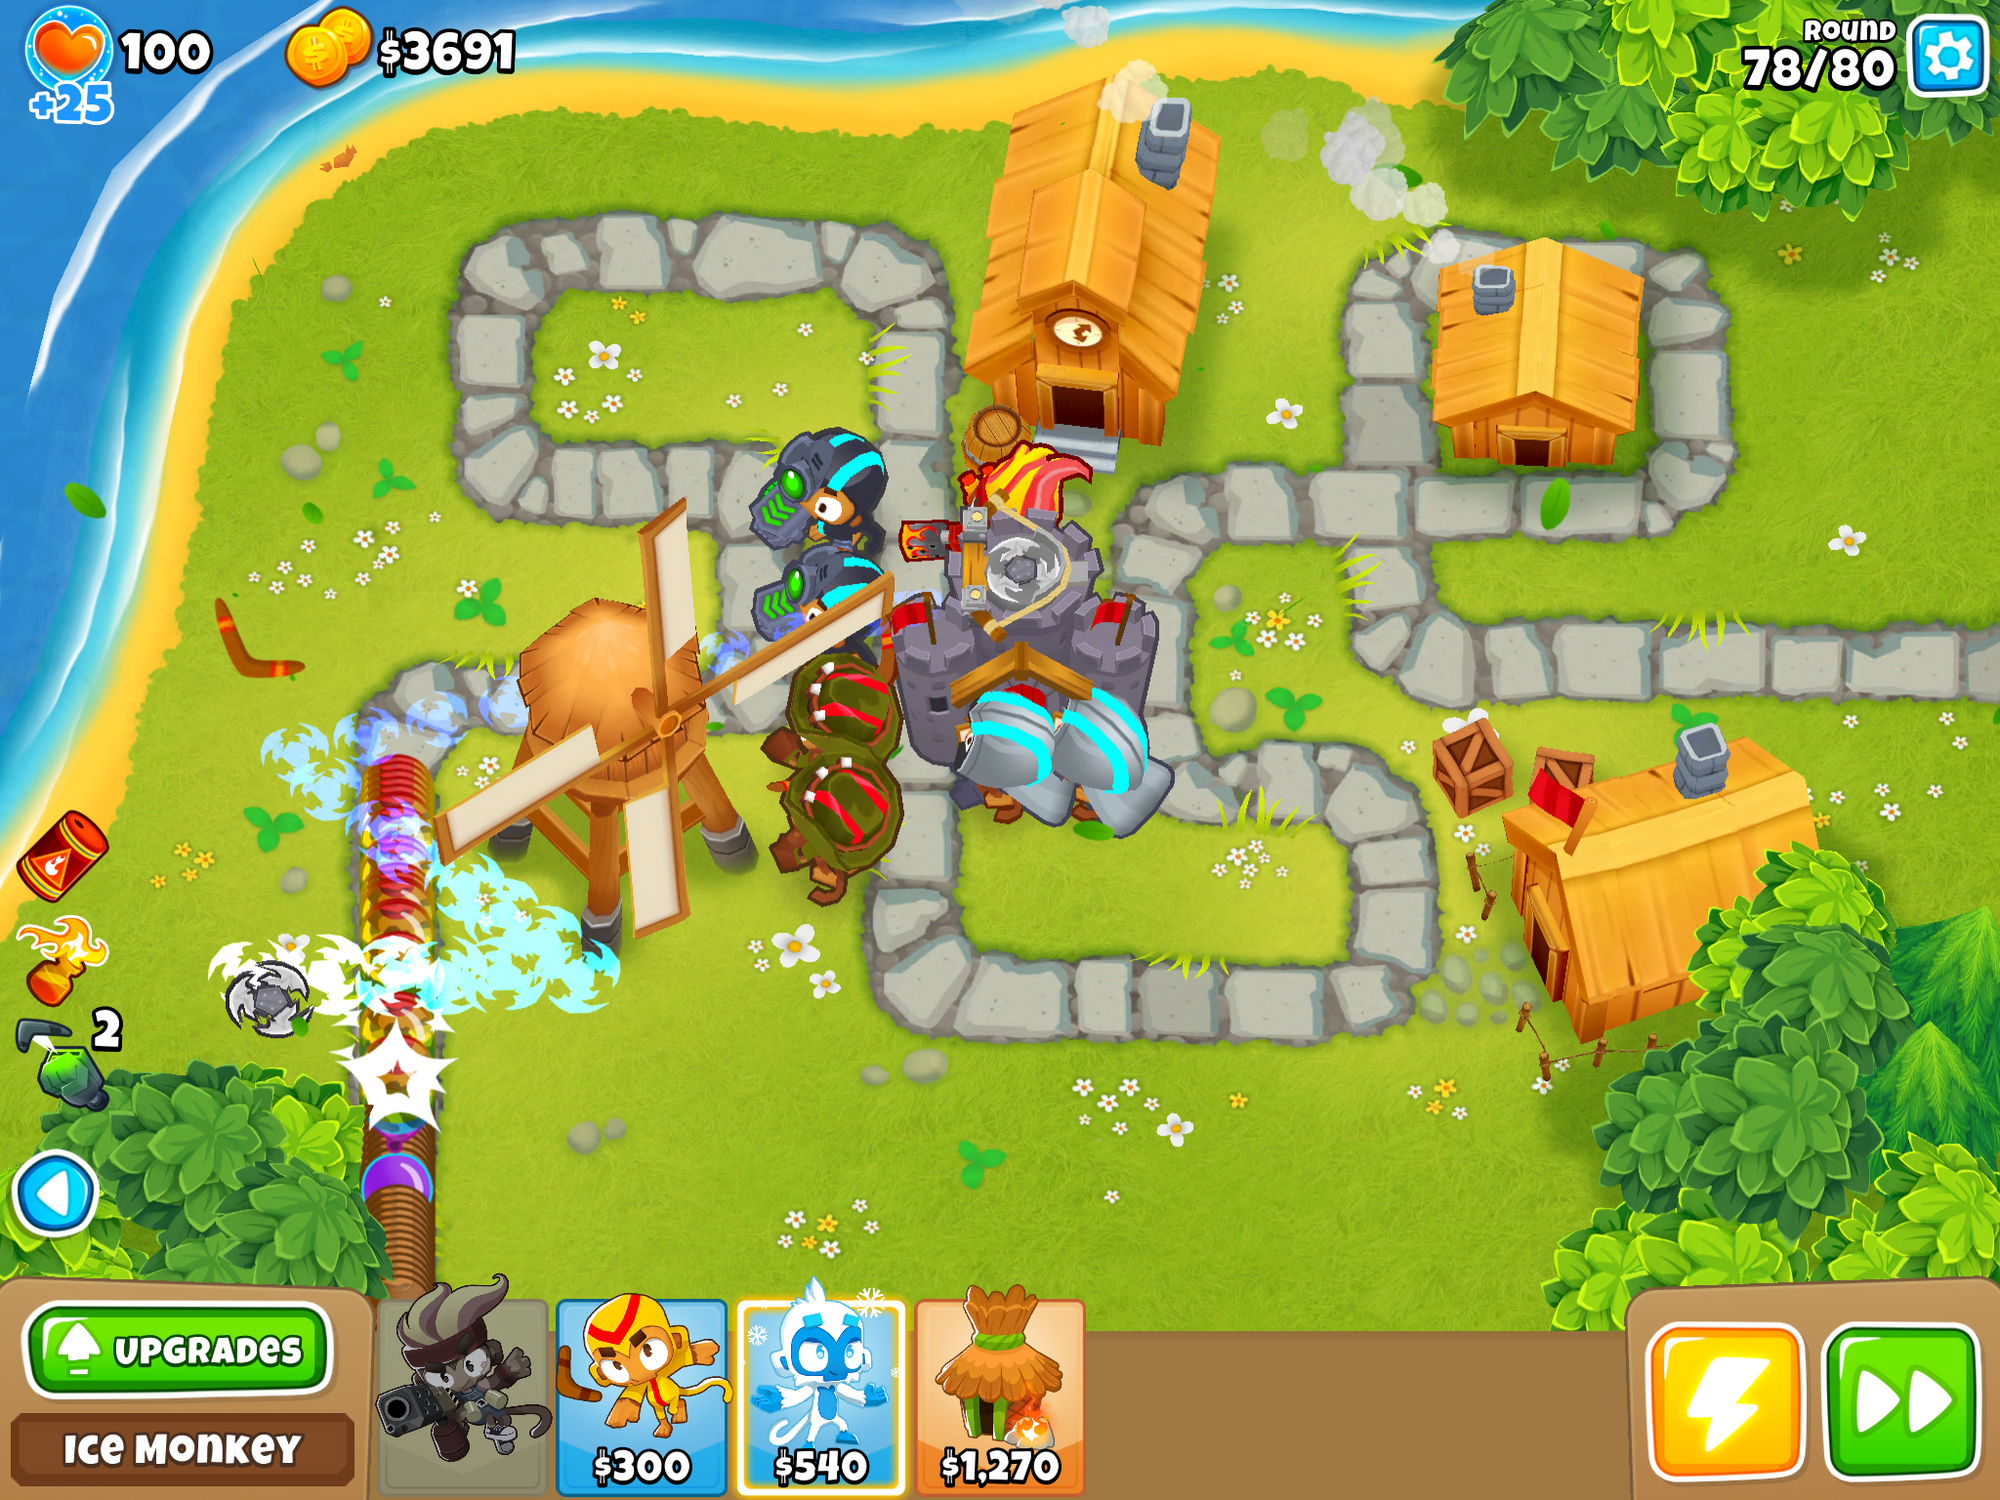 Btd6 pc free | BTD6 APK For Android, PC, iOS Latest Version Download